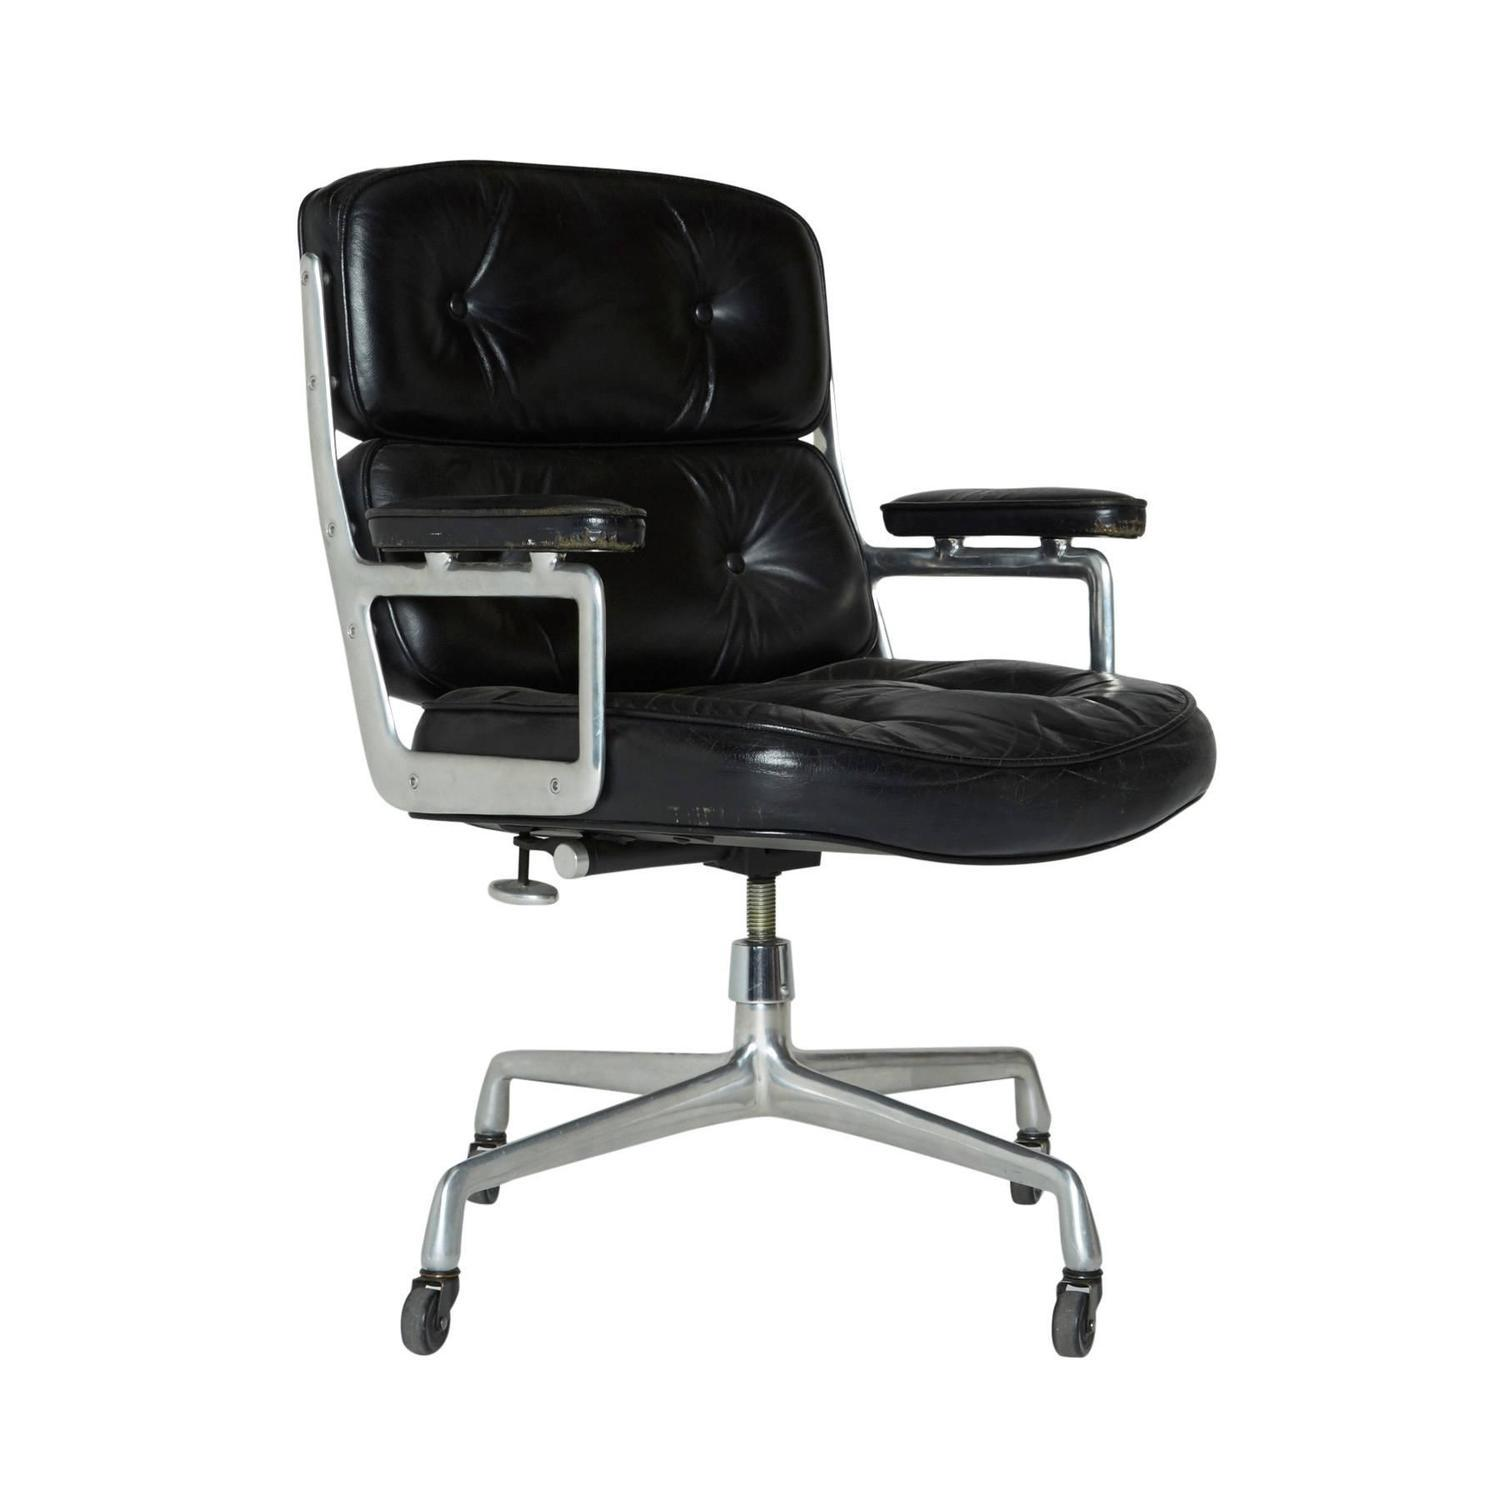 Black Leather Time Life Chair, Used